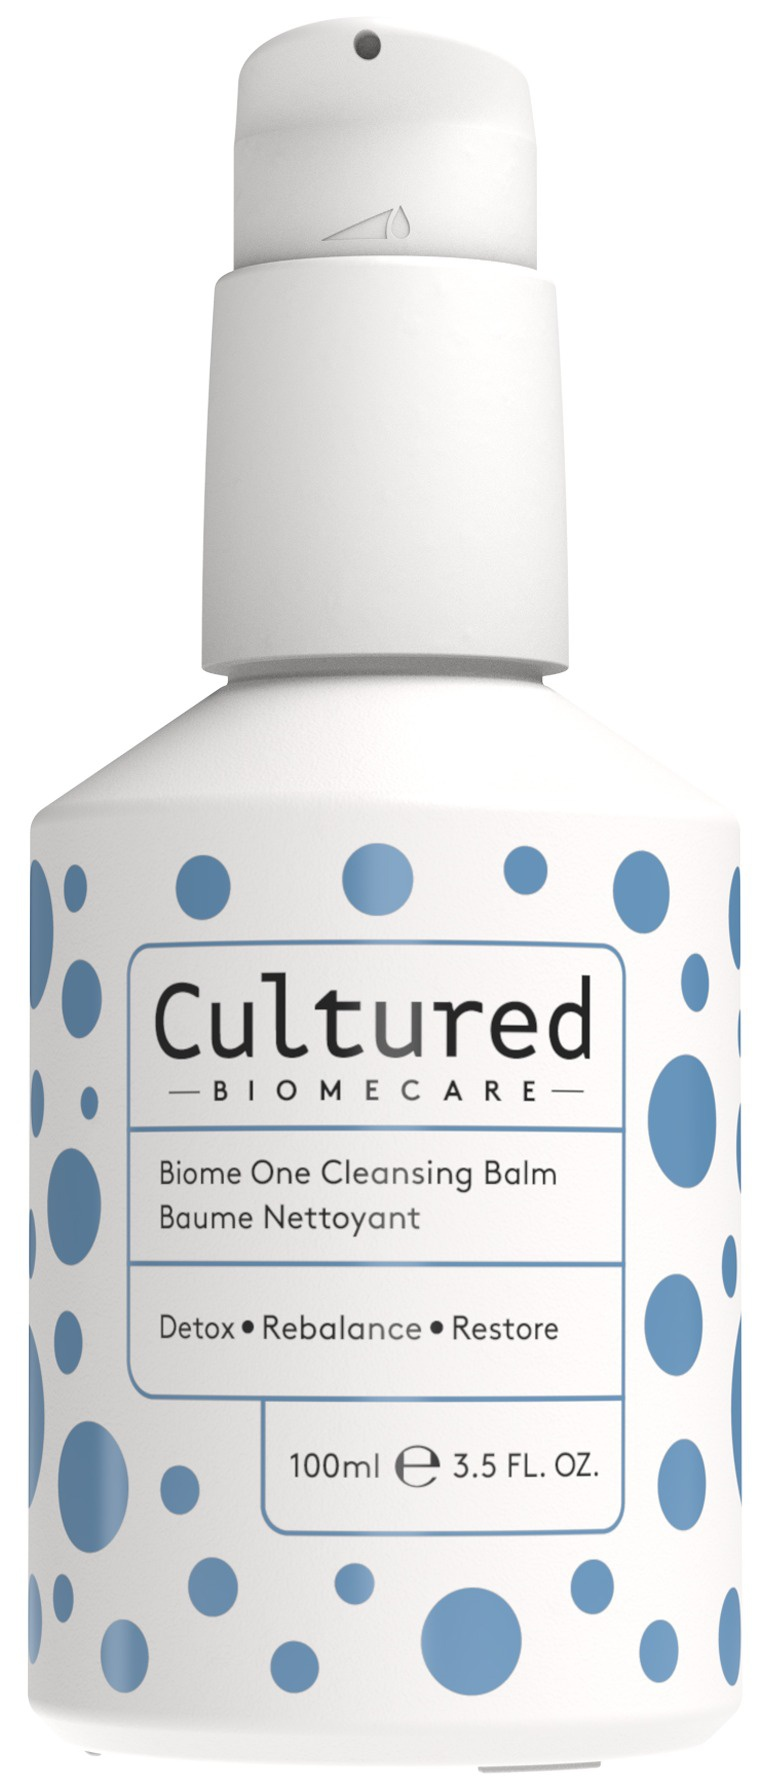 Cultured Biome One Cleansing Balm